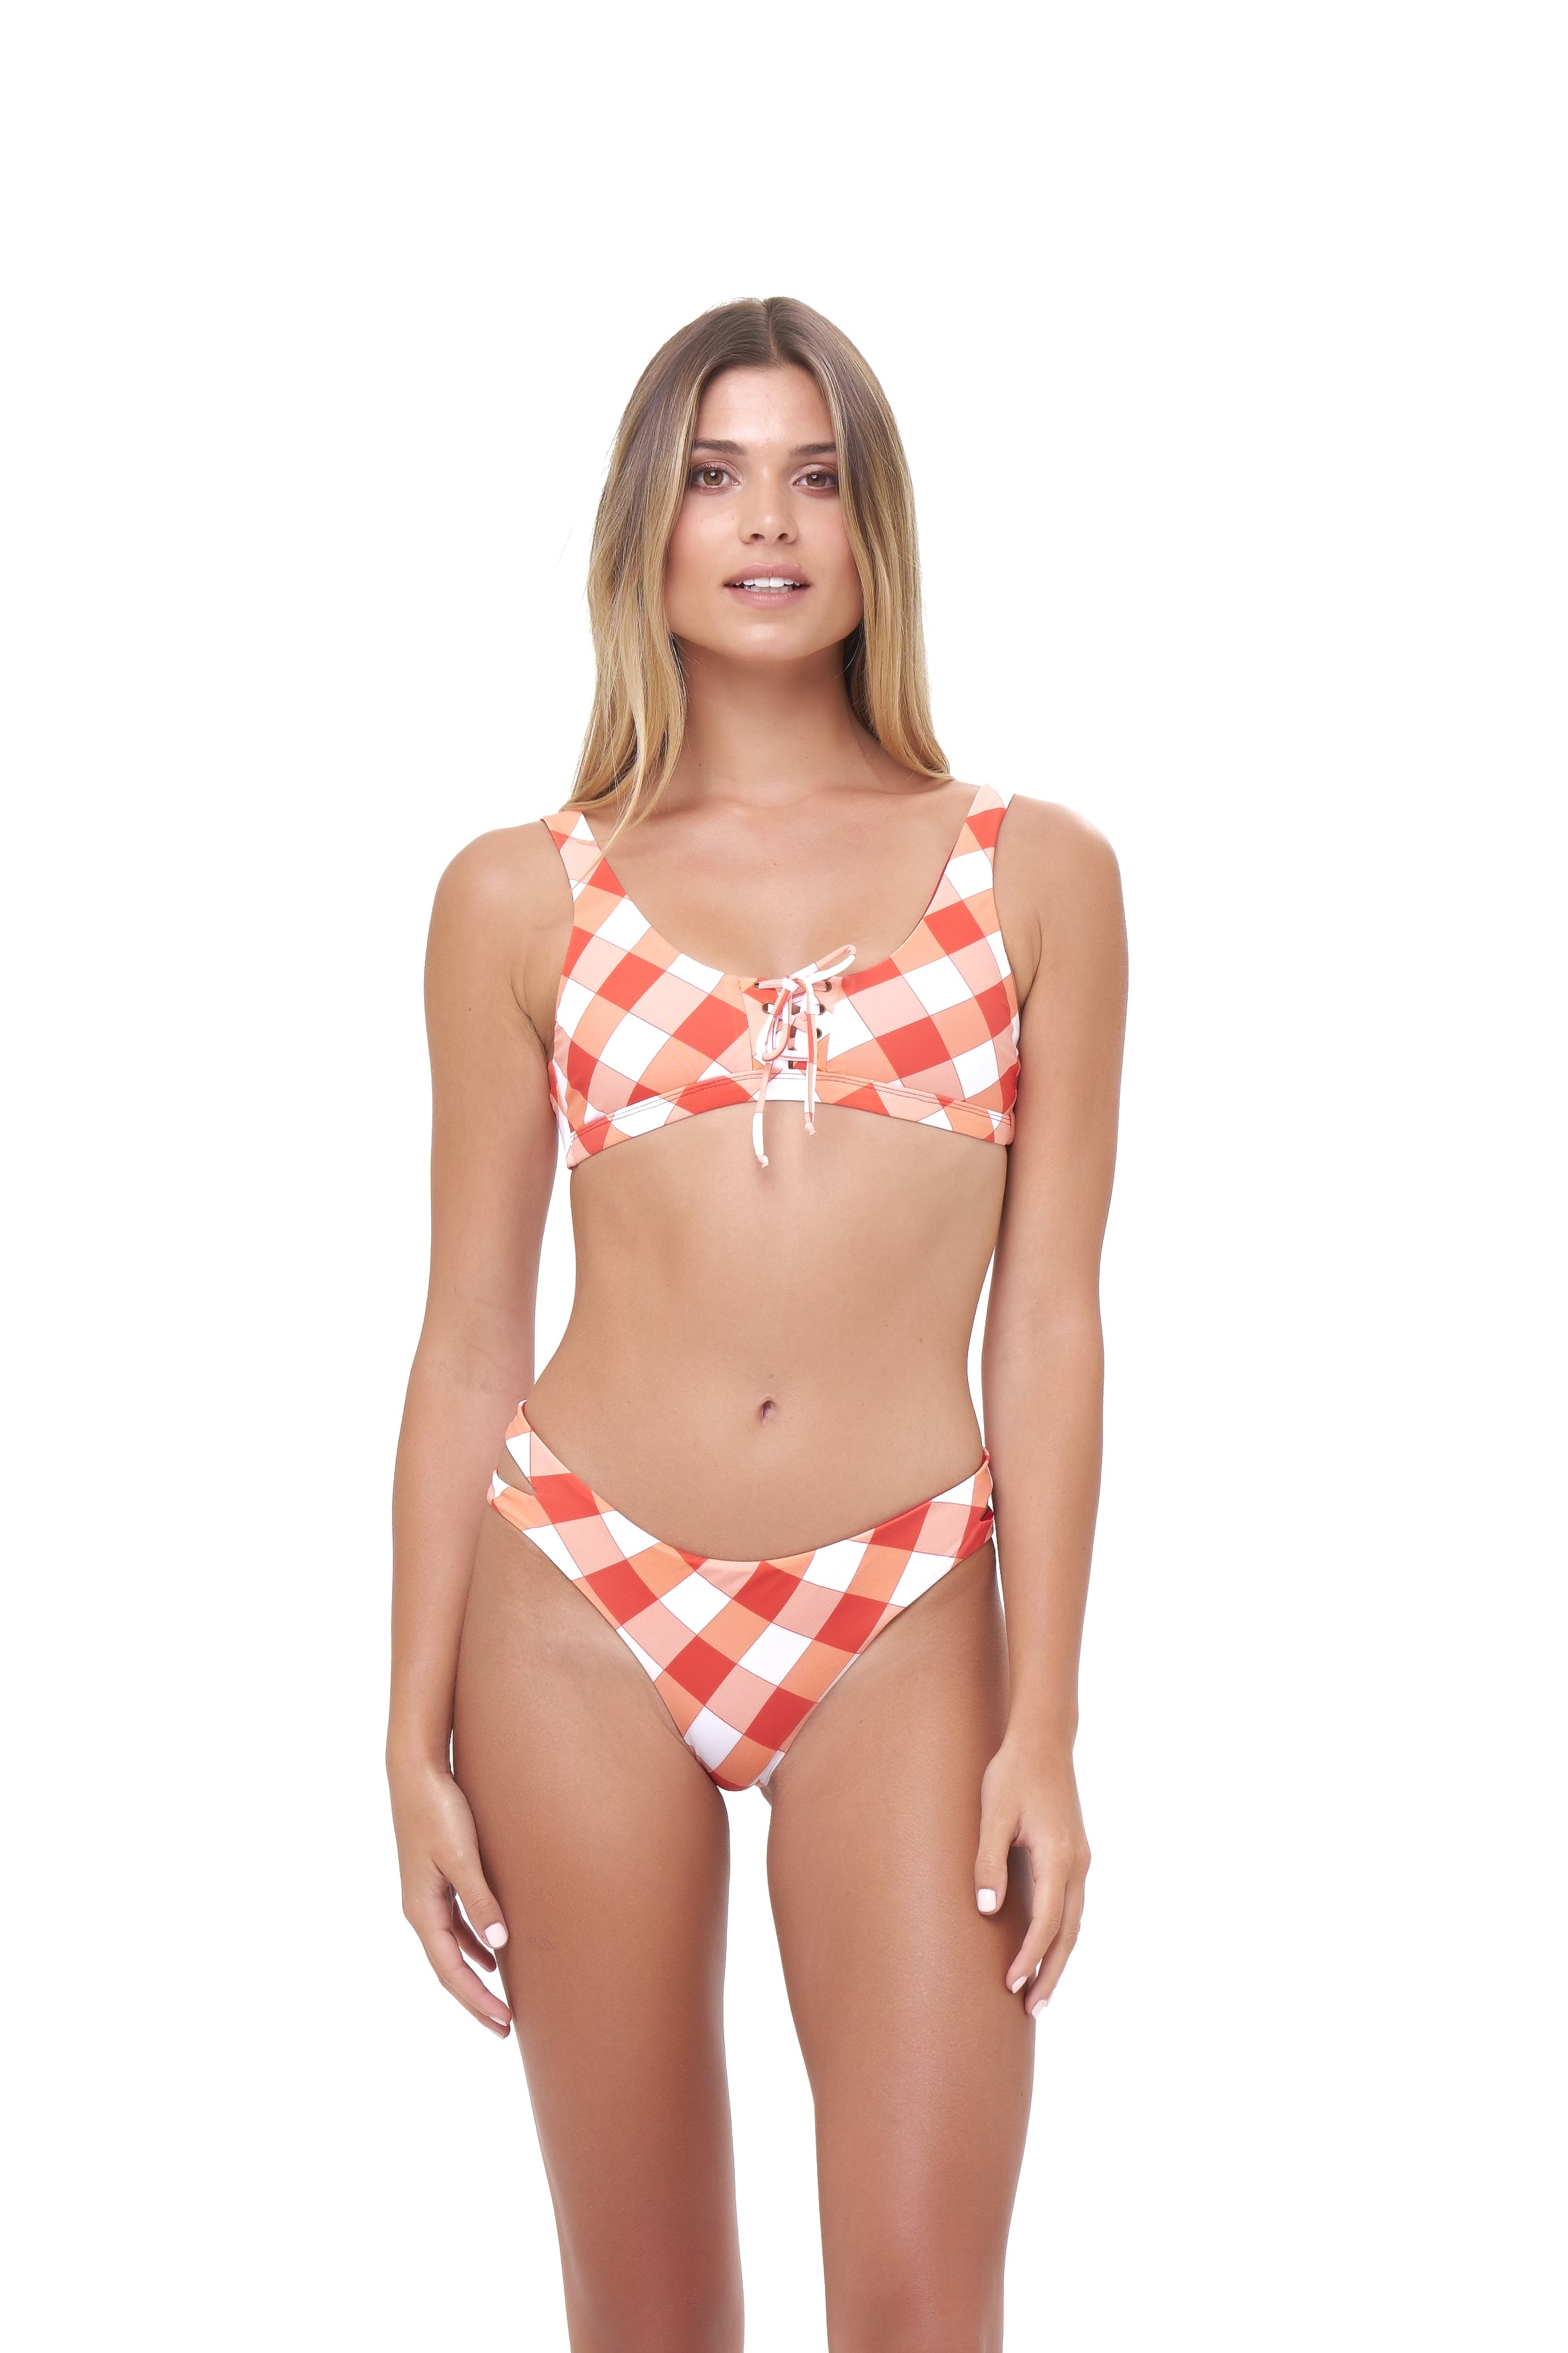 Storm Swimwear - Corsica - Lace Up bikini top in Rever Print - Flame Red